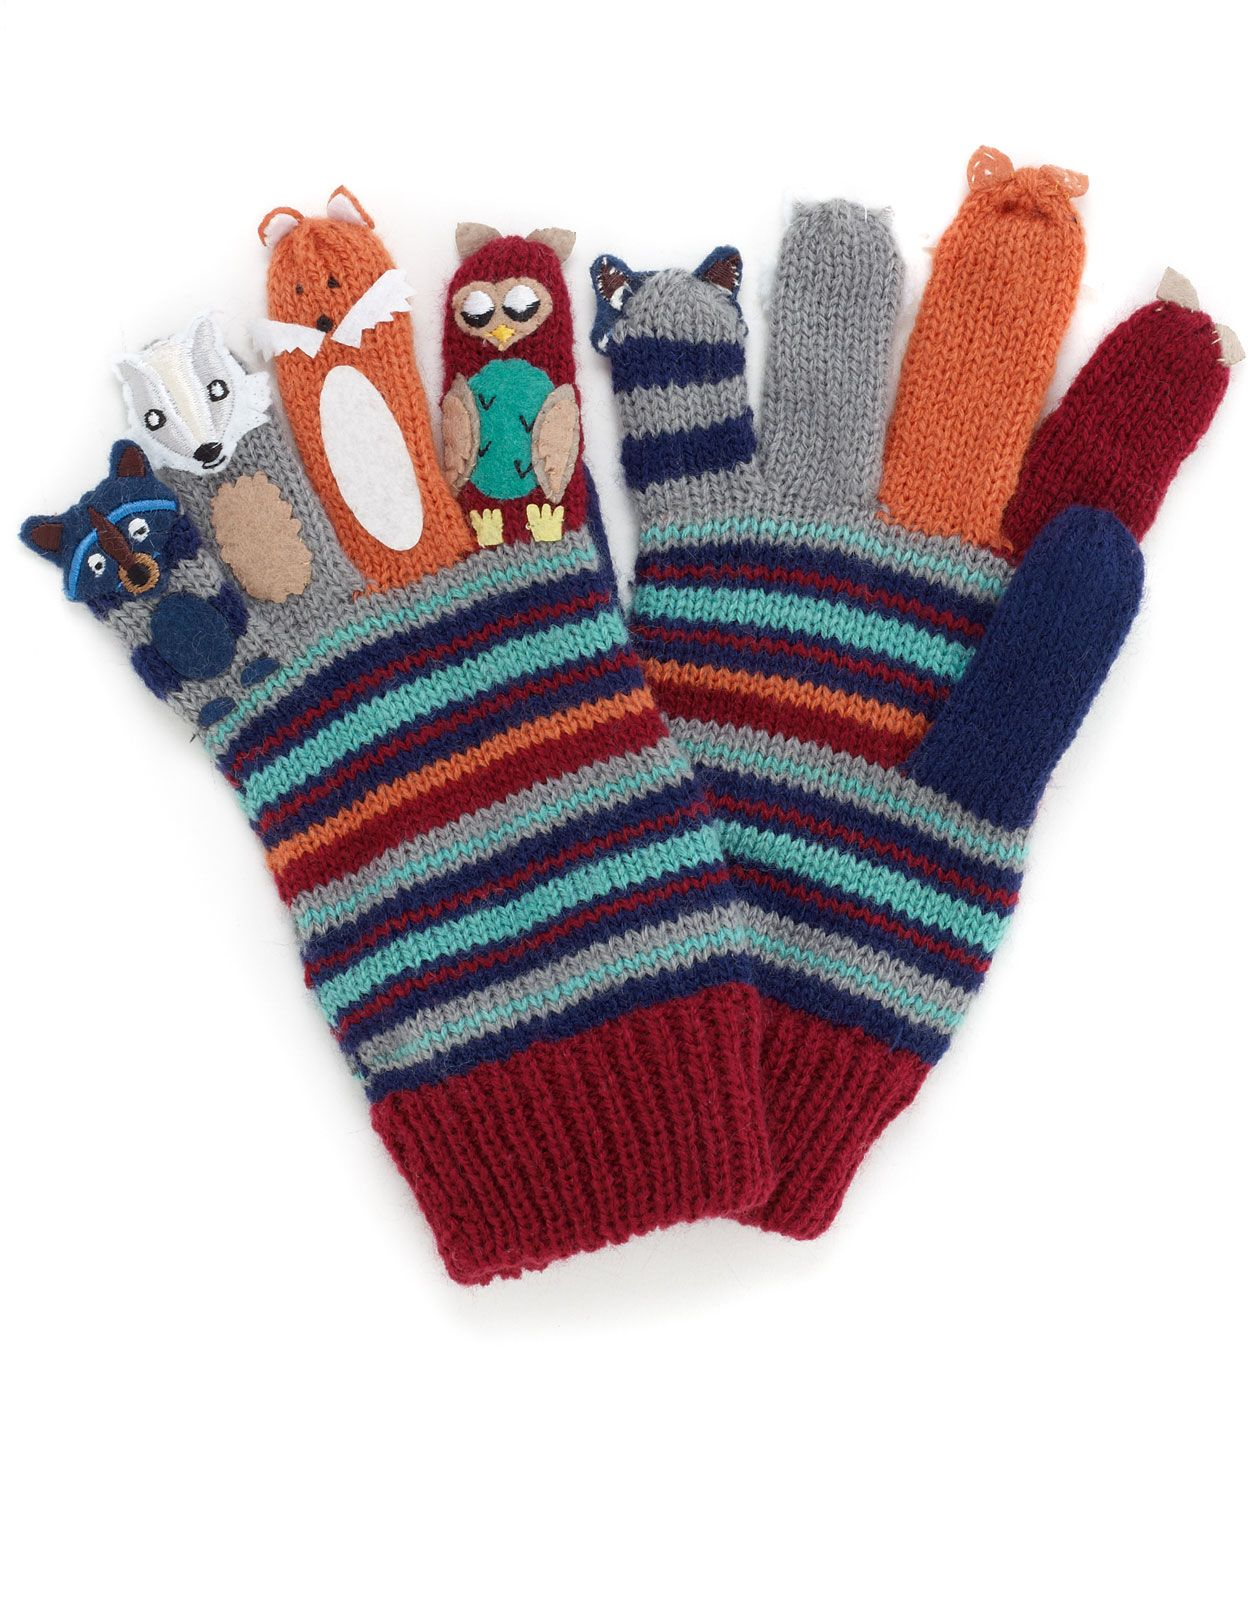 Mens novelty gloves - Boy Woodland Friends Novelty Gloves 18 00 Monsoon